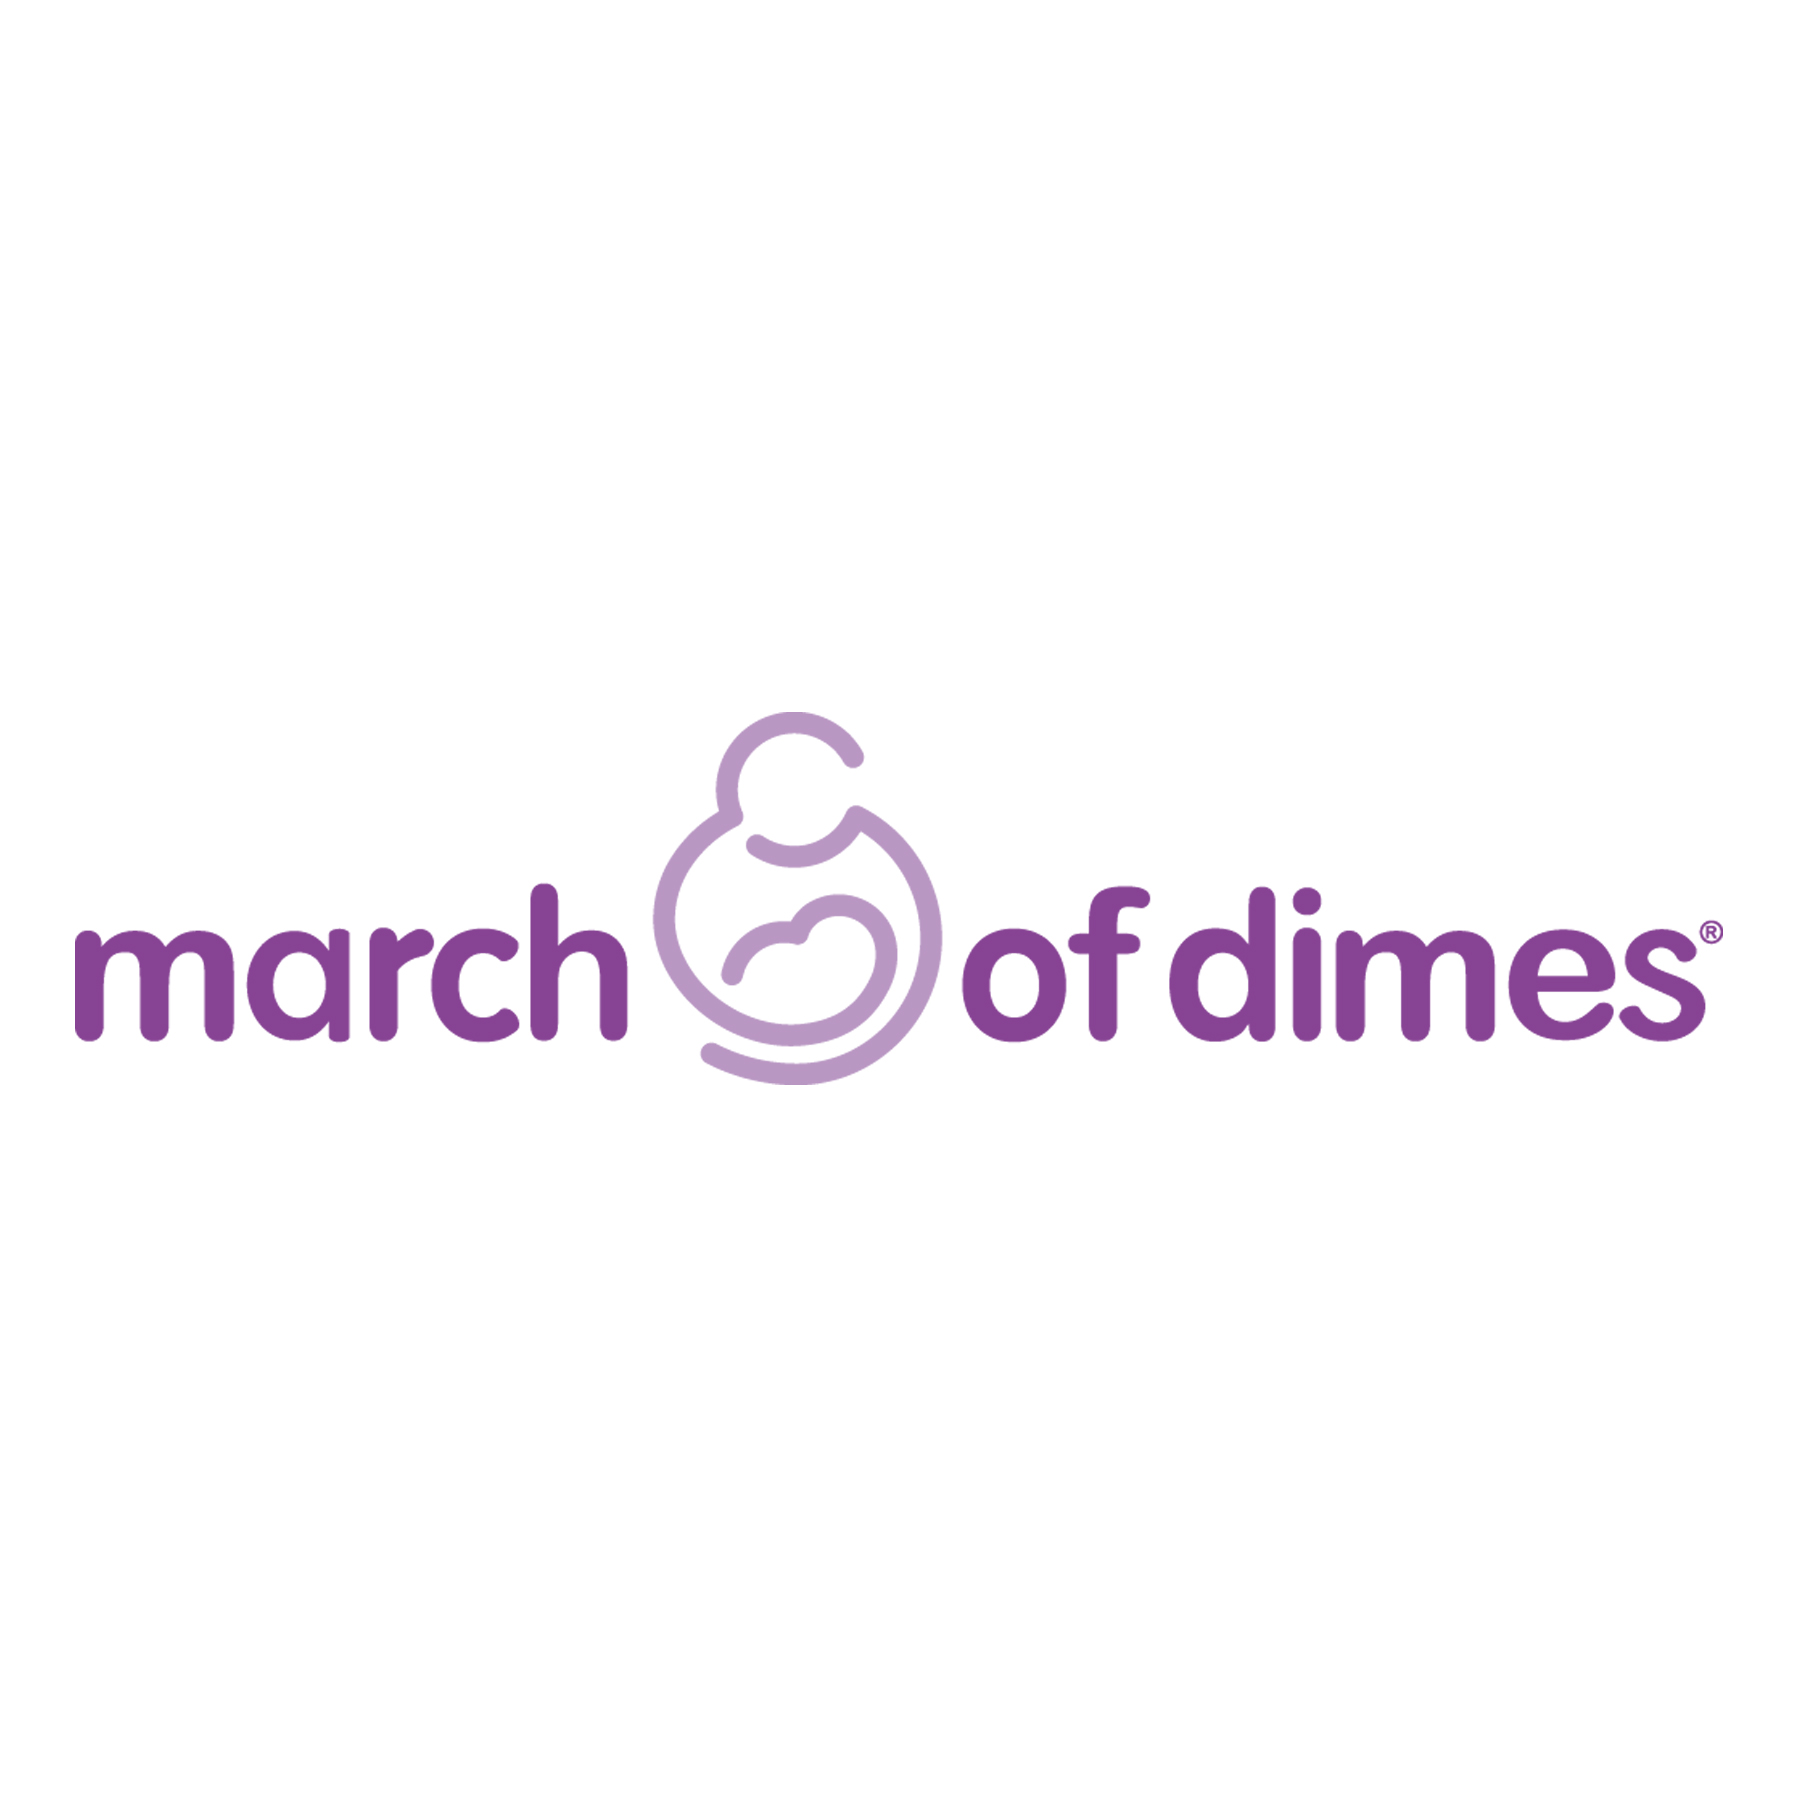 "- march of dimes""You have opened so many new doors for us, from celebrity and entertainment, to publicity and public service; we are are so thankful that you have lent us your time and talent to help us promote our largest fundraiser, and the first walking event in the country.  March of Dimes appreciates your 'can do' attitude, and how it seems so simple that great things happen when you're around."""